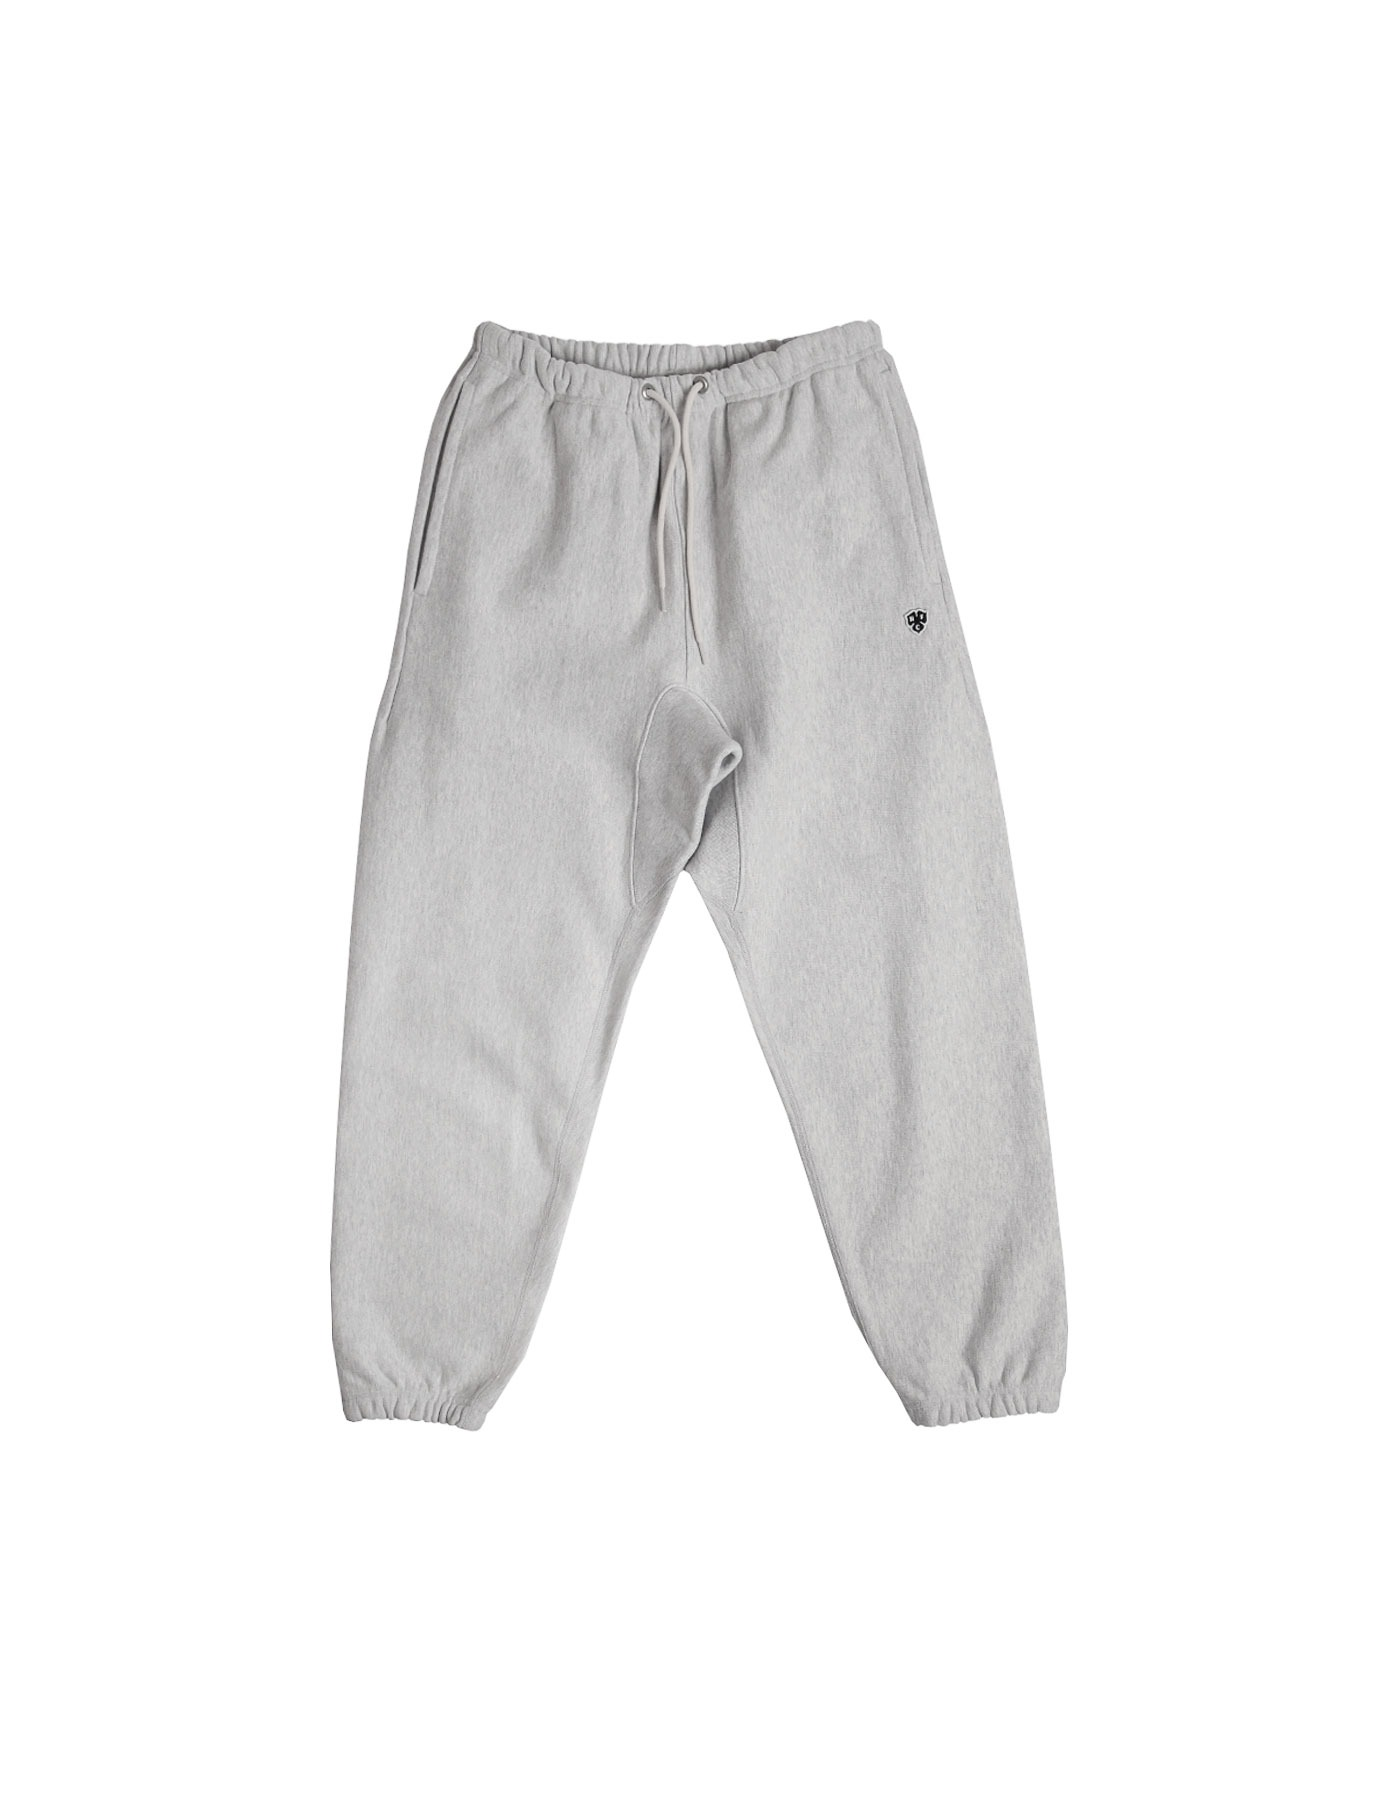 221 REVERSE SWEATPANTS / M.GREY(1%)